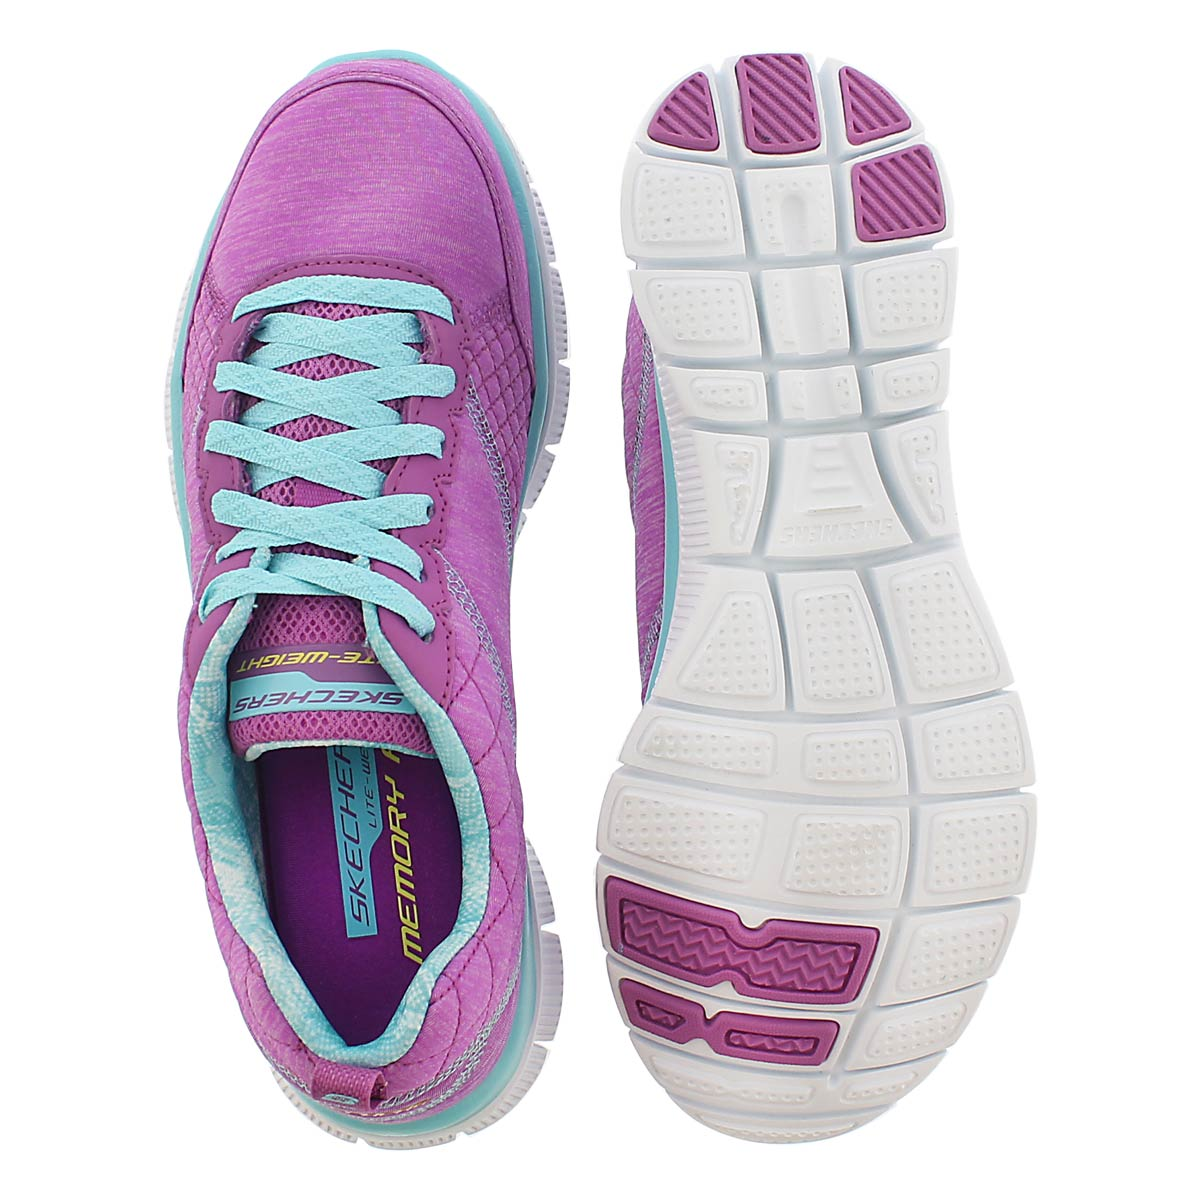 Lds Pretty purple/aqua lace up sneaker